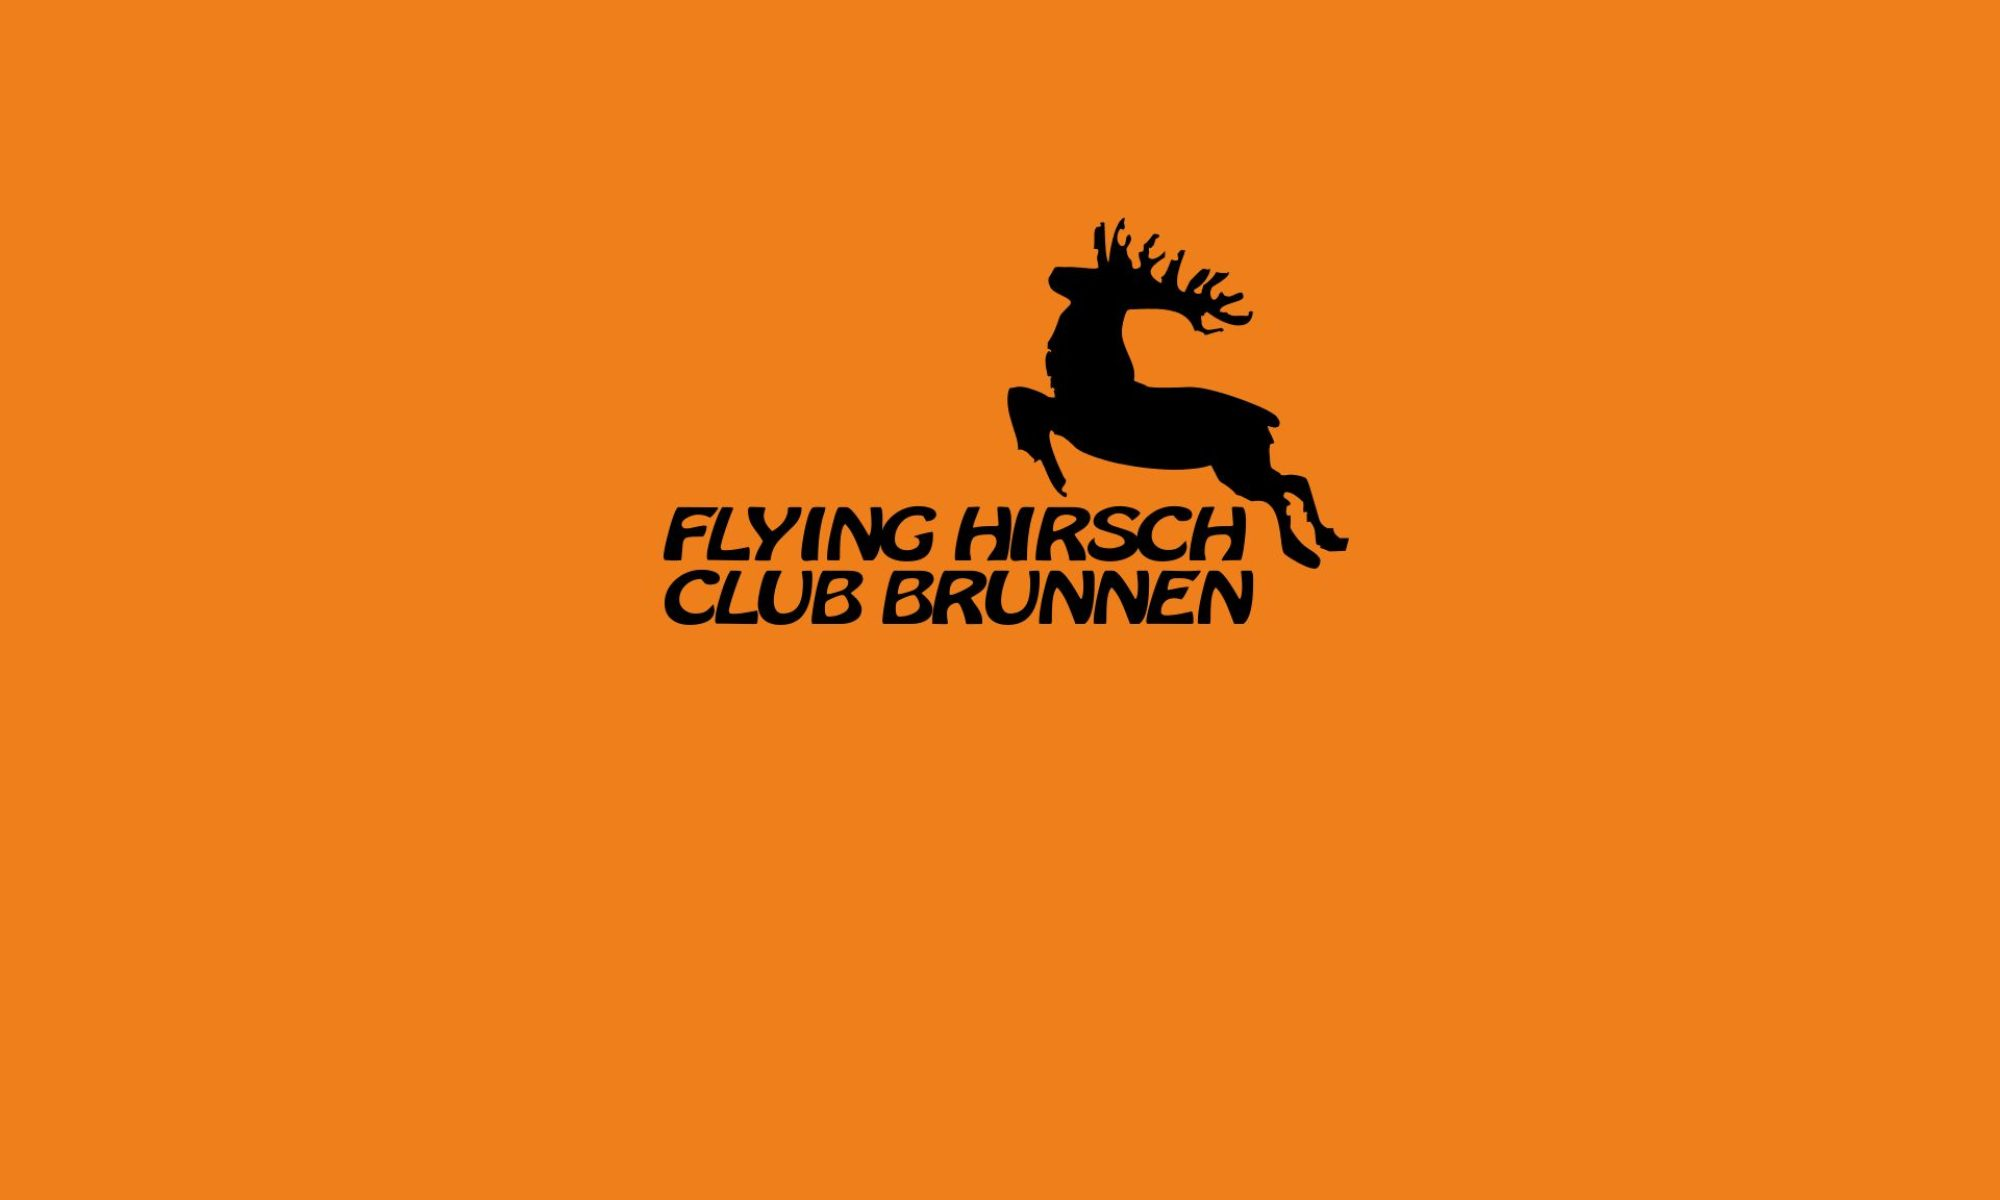 Flying Hirsch Club